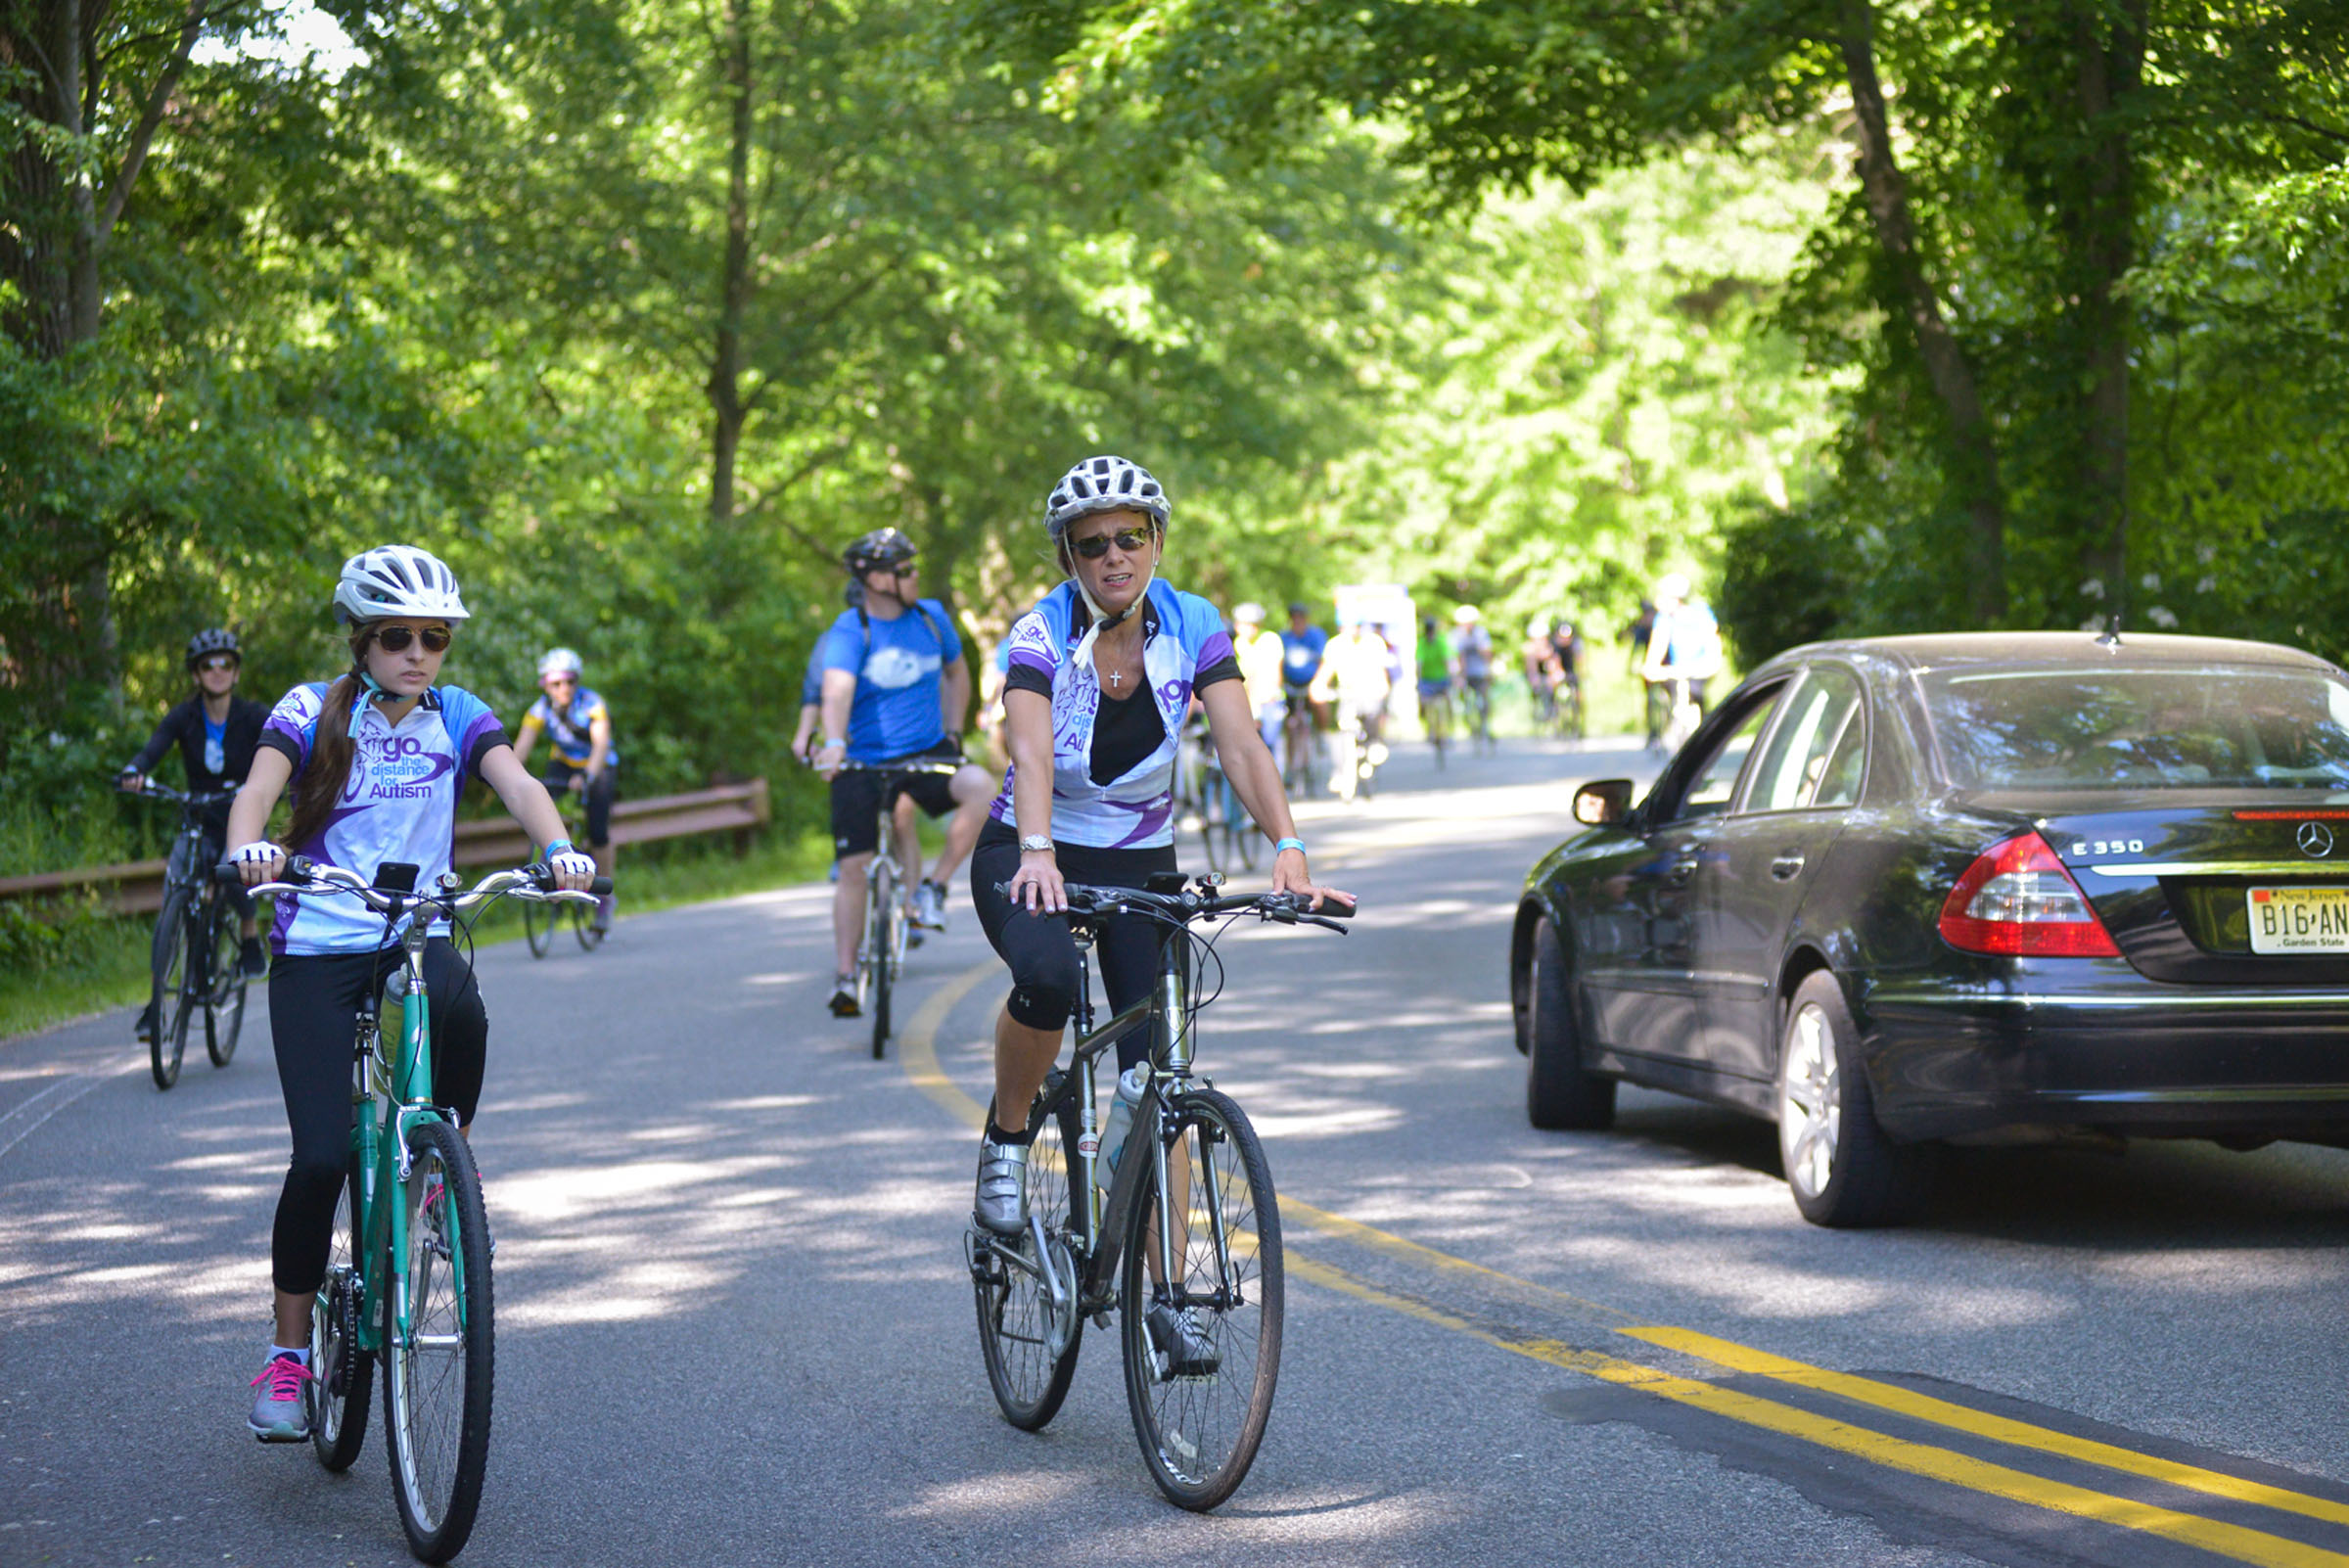 2017-06-04 GTD4A Charity Bike Ride - BCC - Paramus NJ-1906.jpg